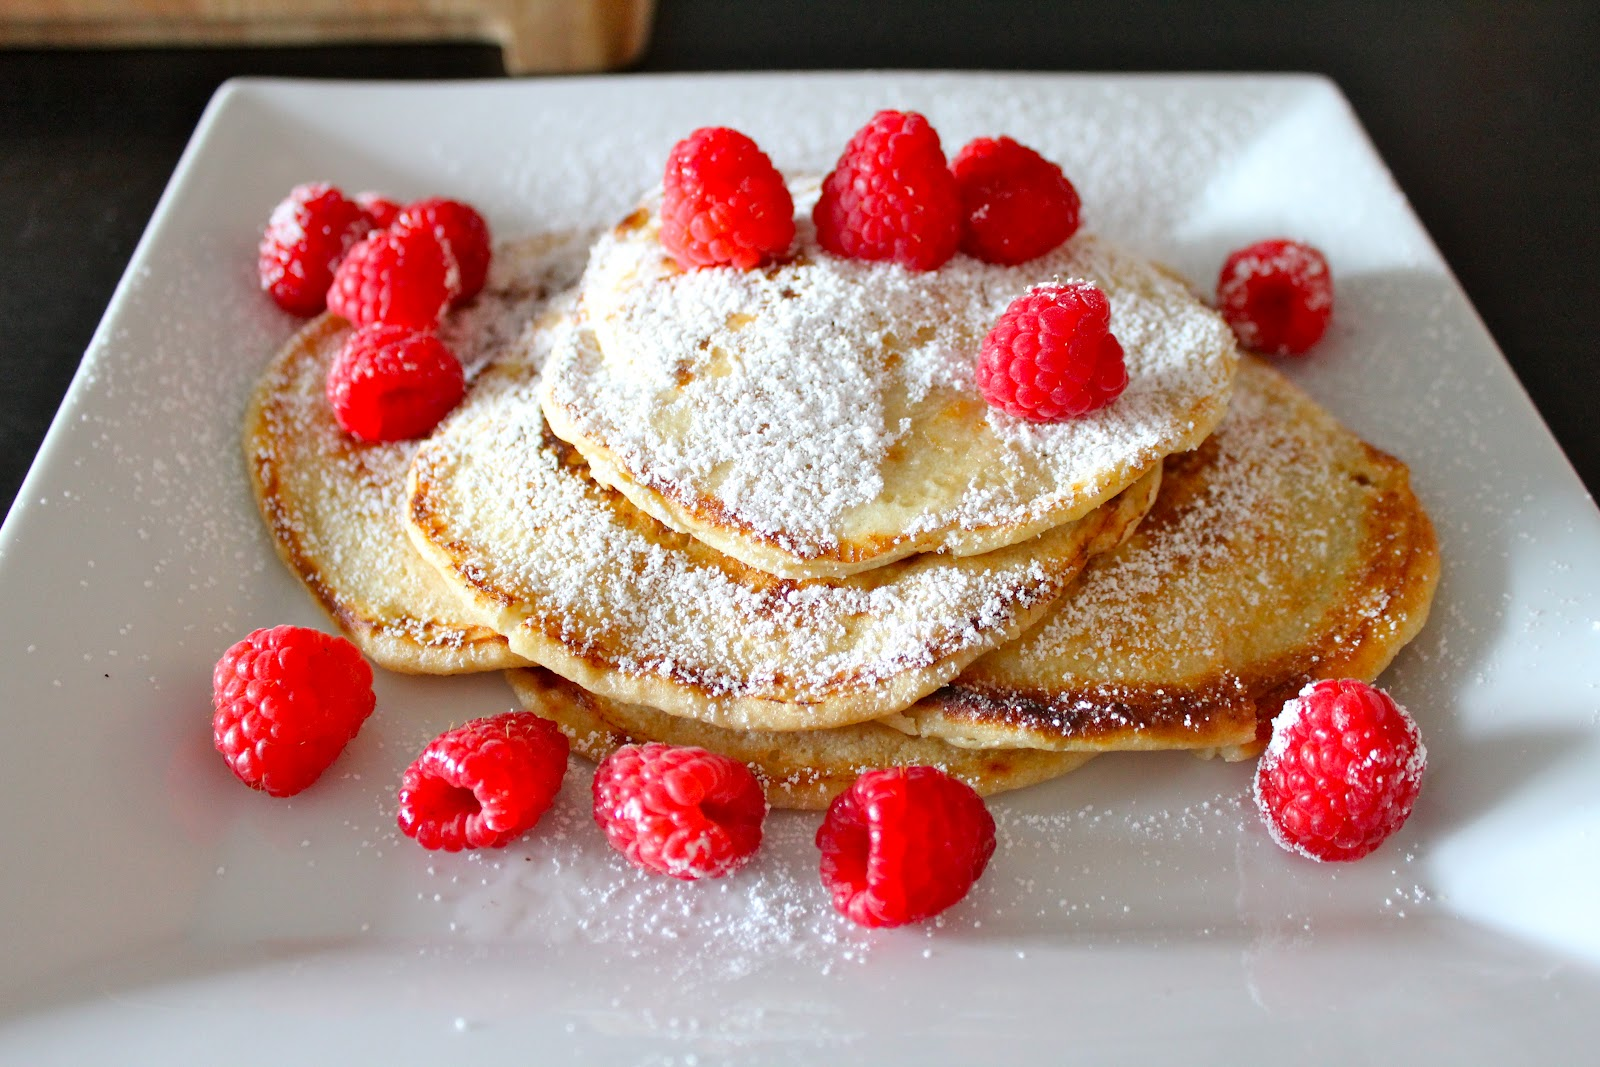 Lemon Ricotta Pancakes - Guest Post from Hima at My Musings